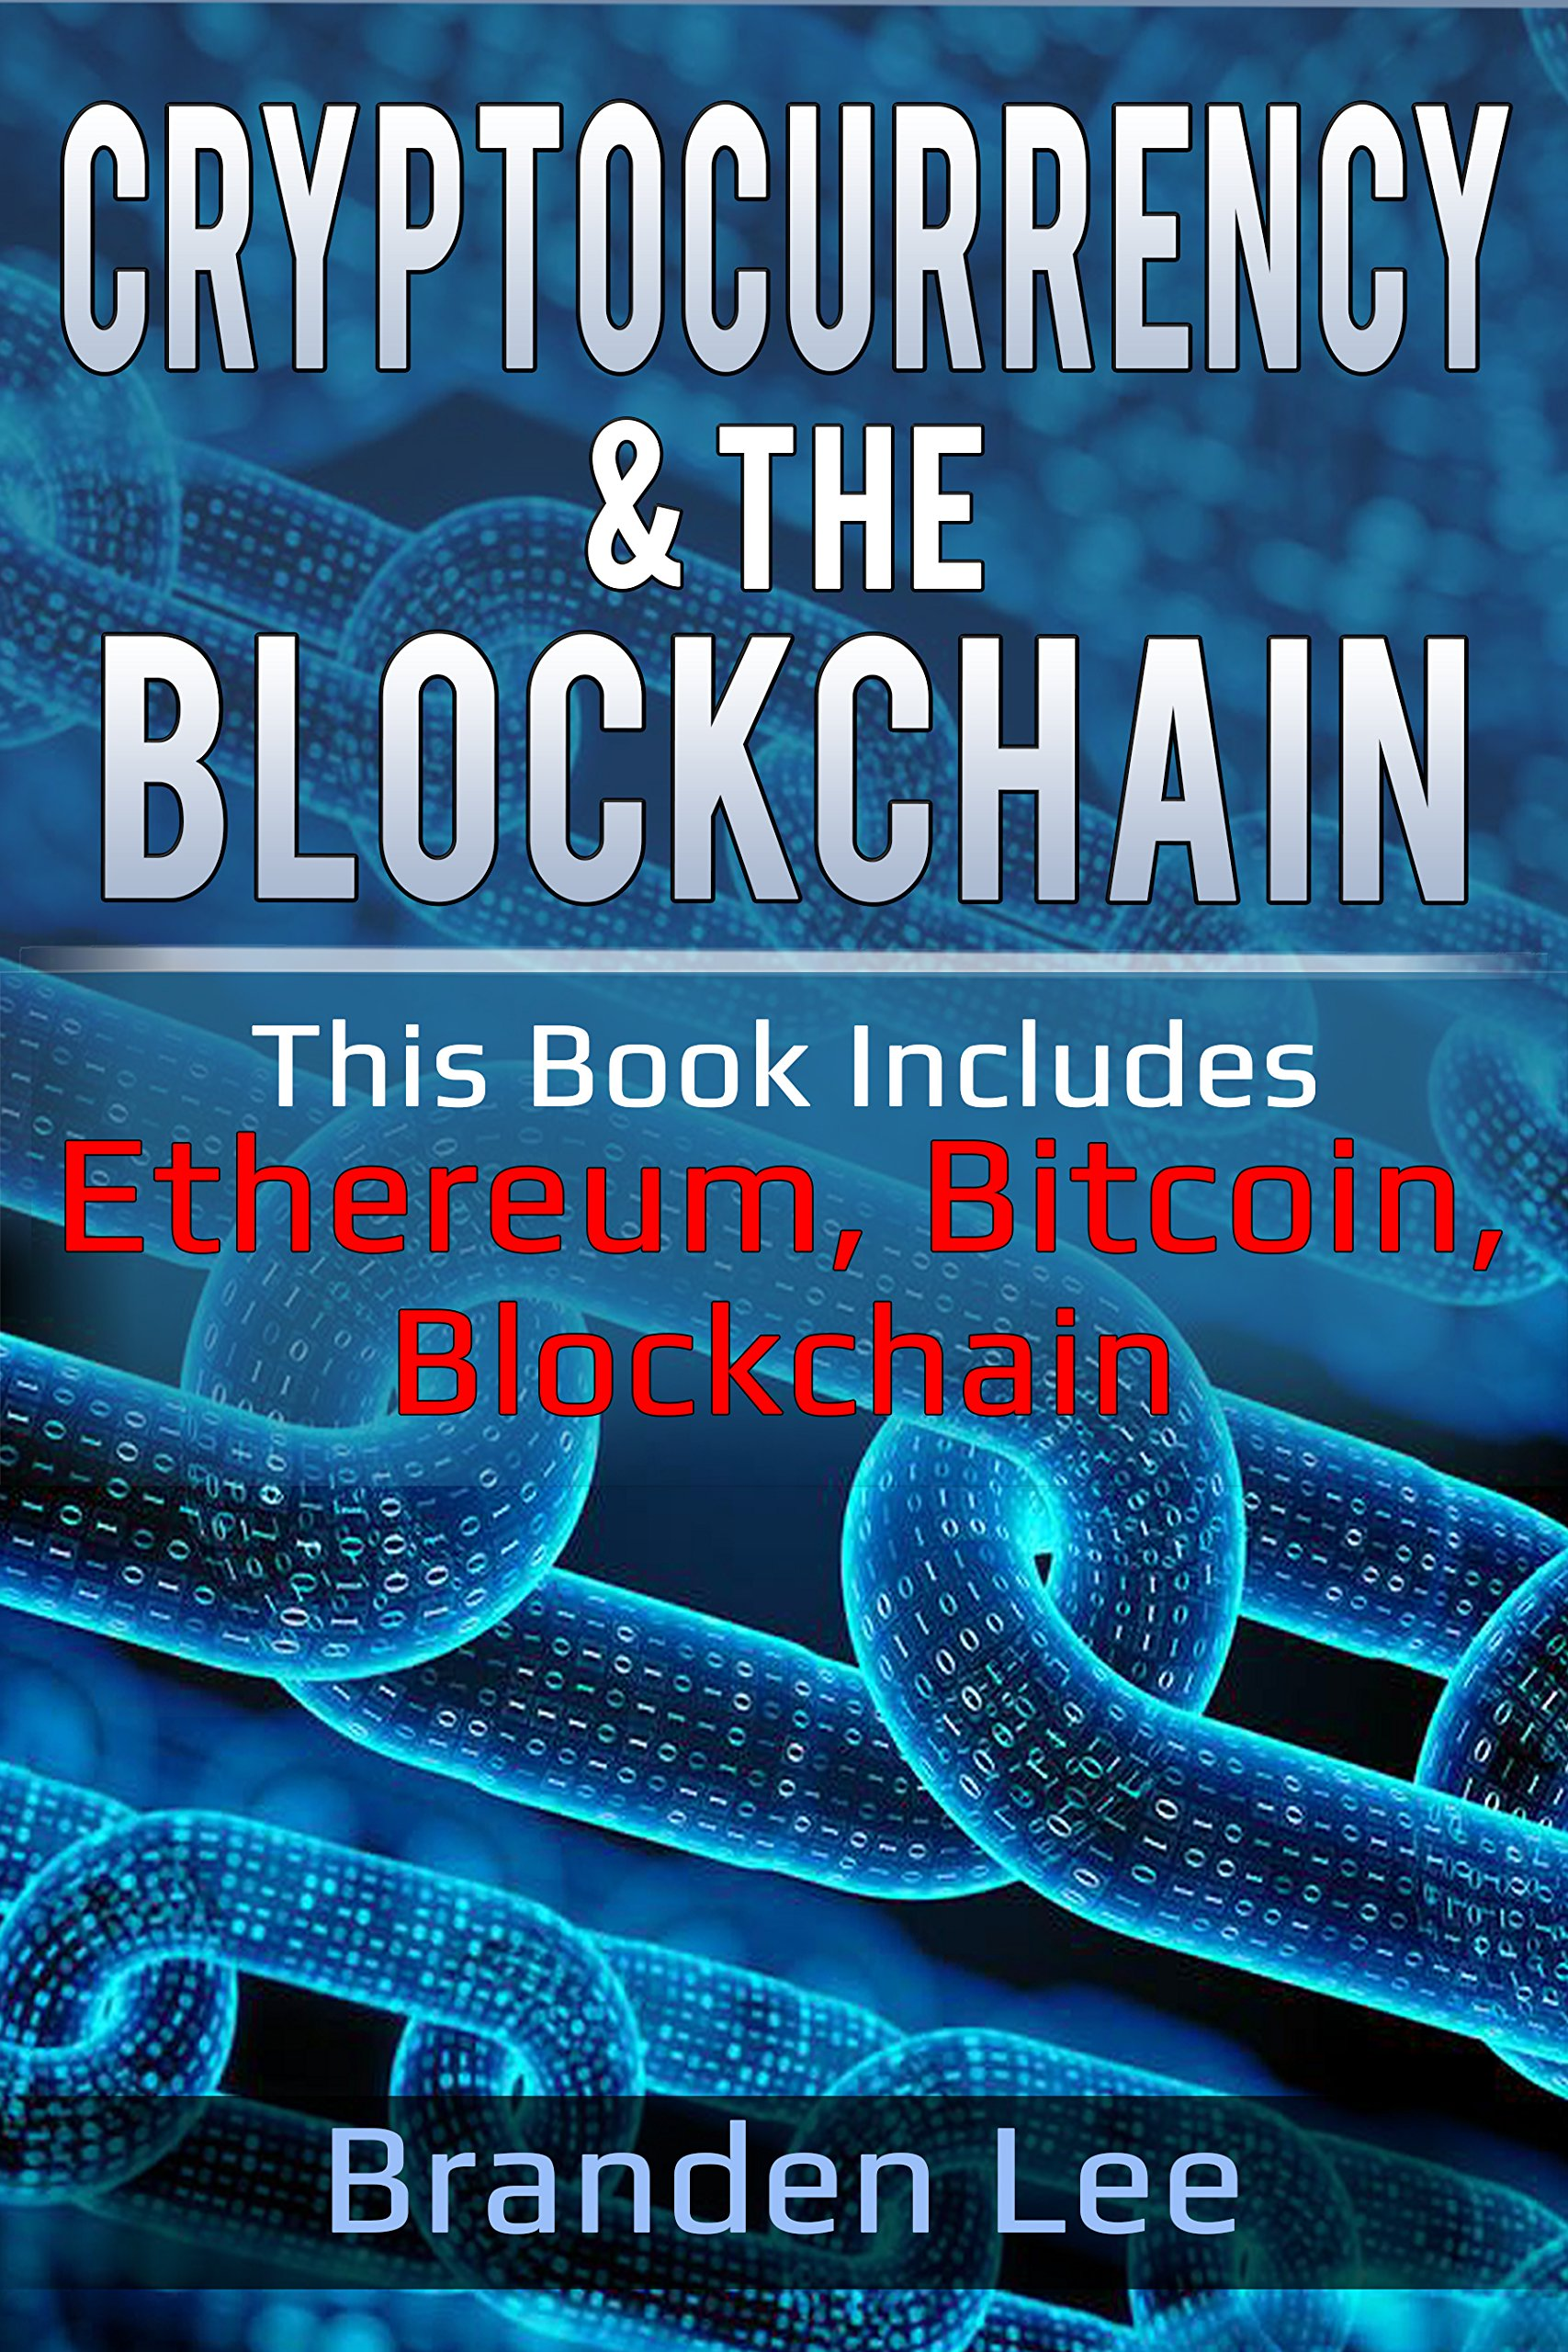 Cryptocurrency & The Blockchain: This Book Includes- Ethereum, Bitcoin: Guide to Trading, Blockchain